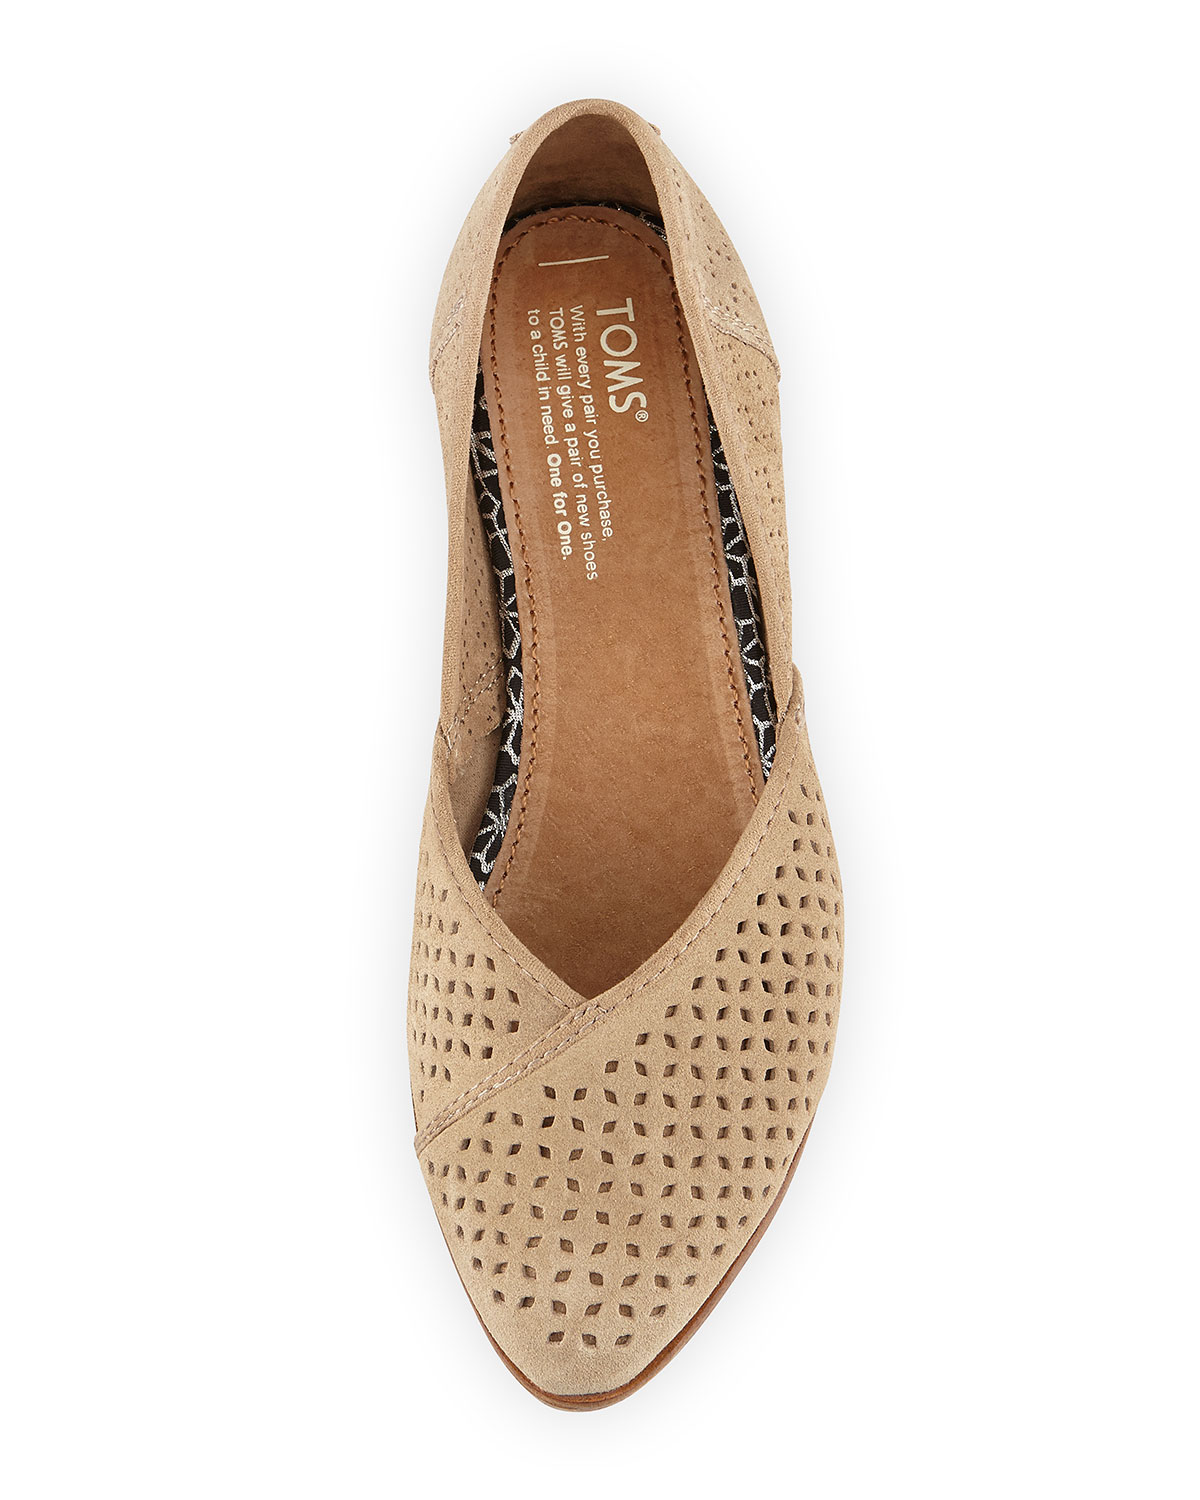 5d739fff1 TOMS Jutti Perforated Suede Flat, Taupe | Neiman Marcus